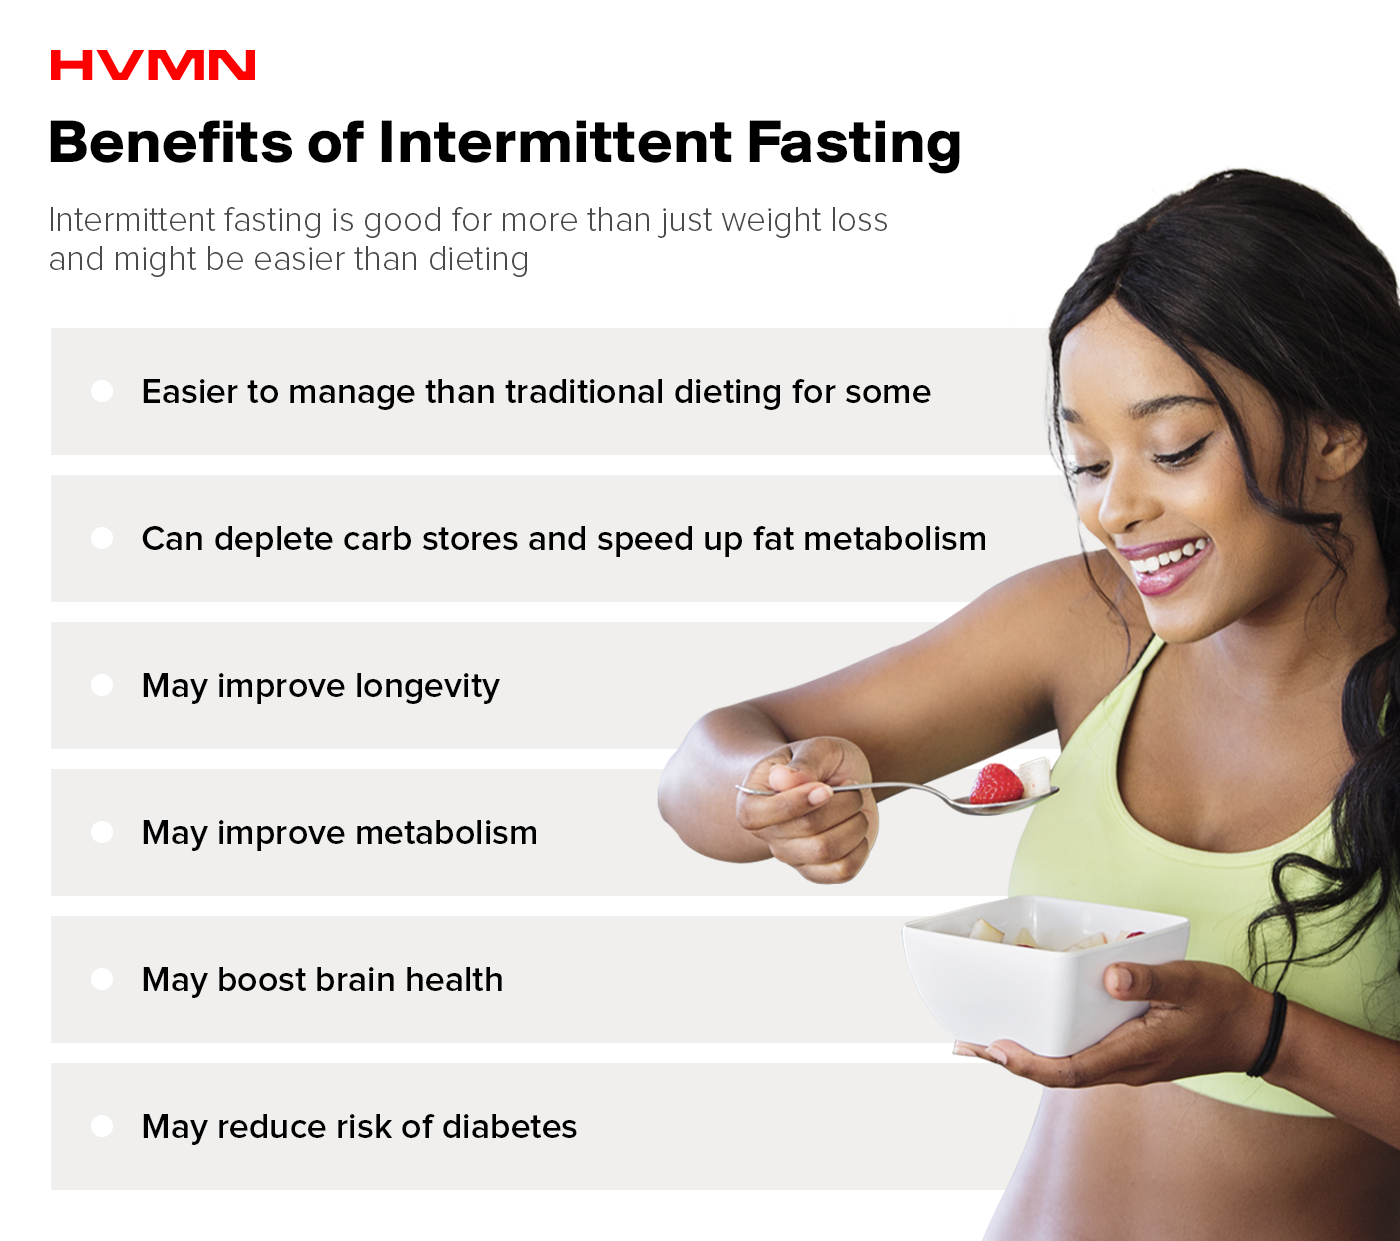 A woman eating a bowl of fruit showing the benefits of intermittent fasting